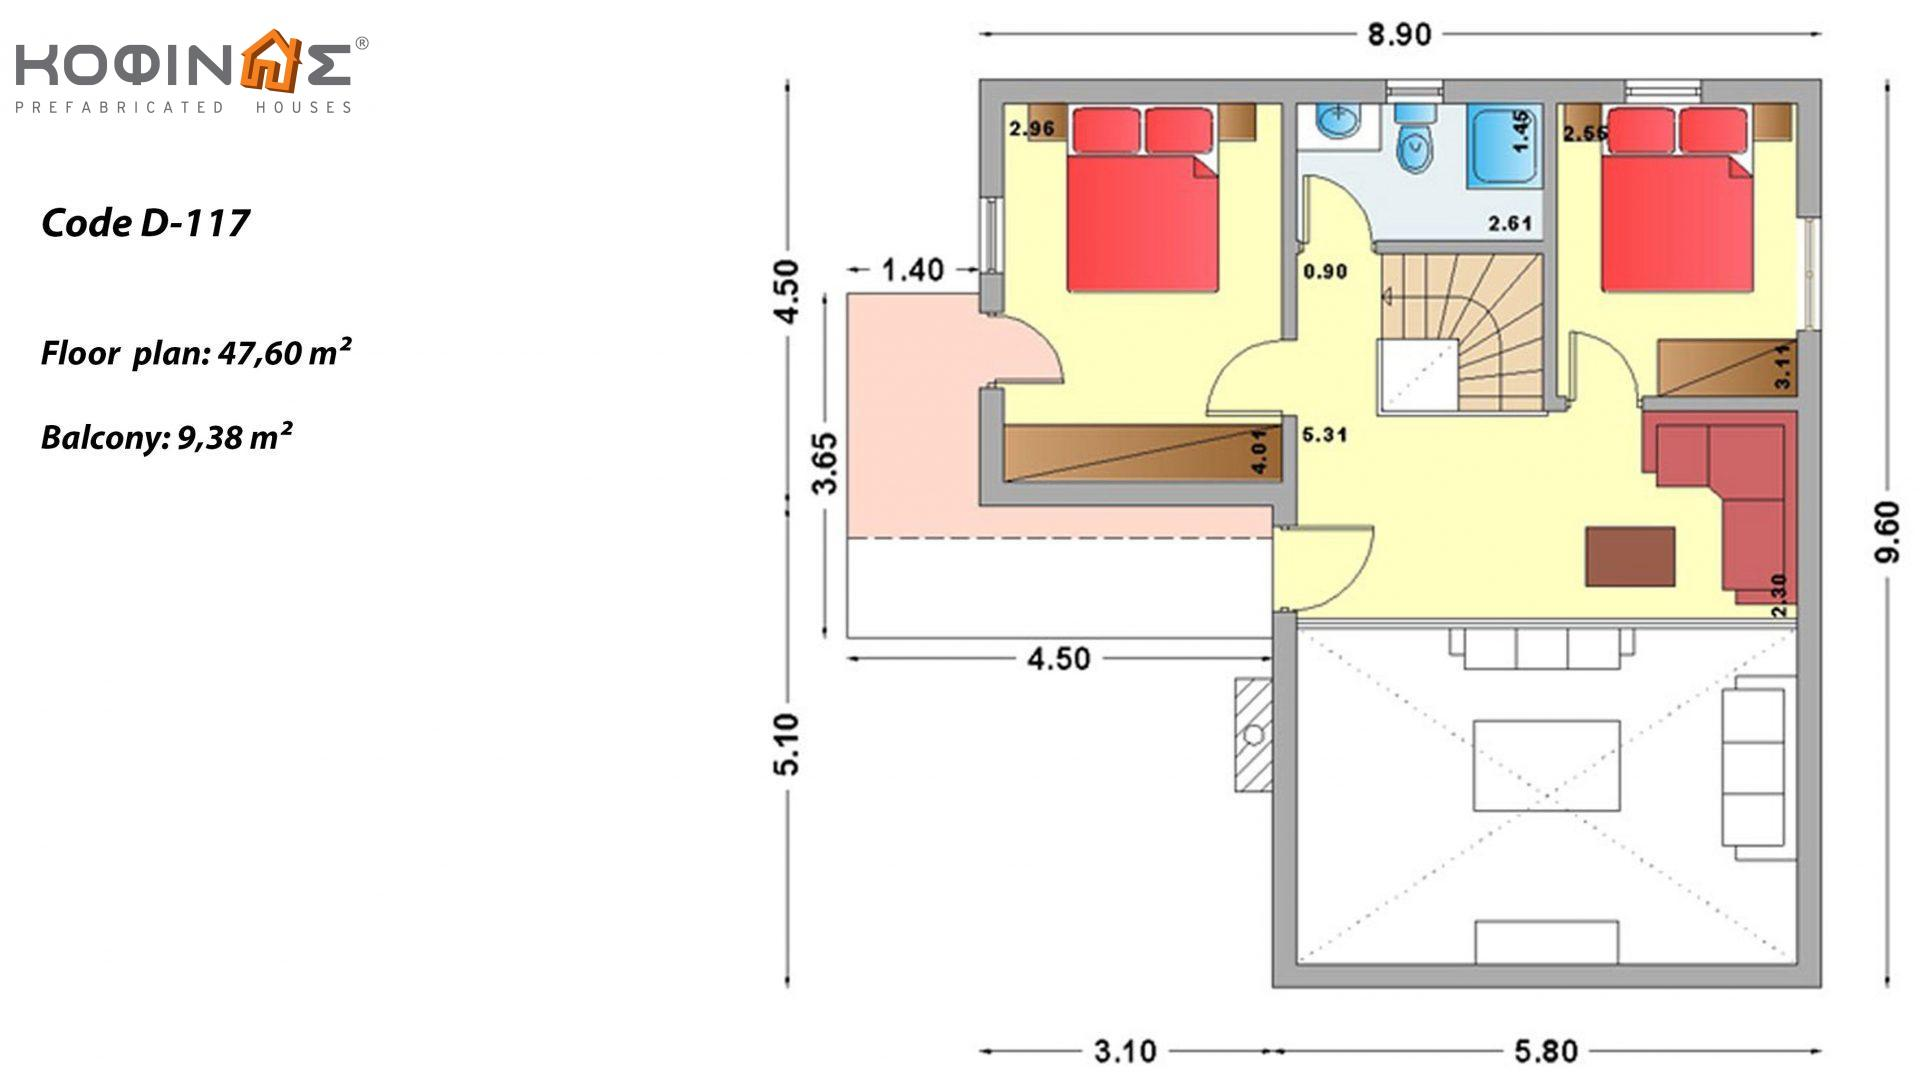 2-story house D-117, total surface of 117,20 m²,roofed areas 25,45 m²,balconies 9,38 m²